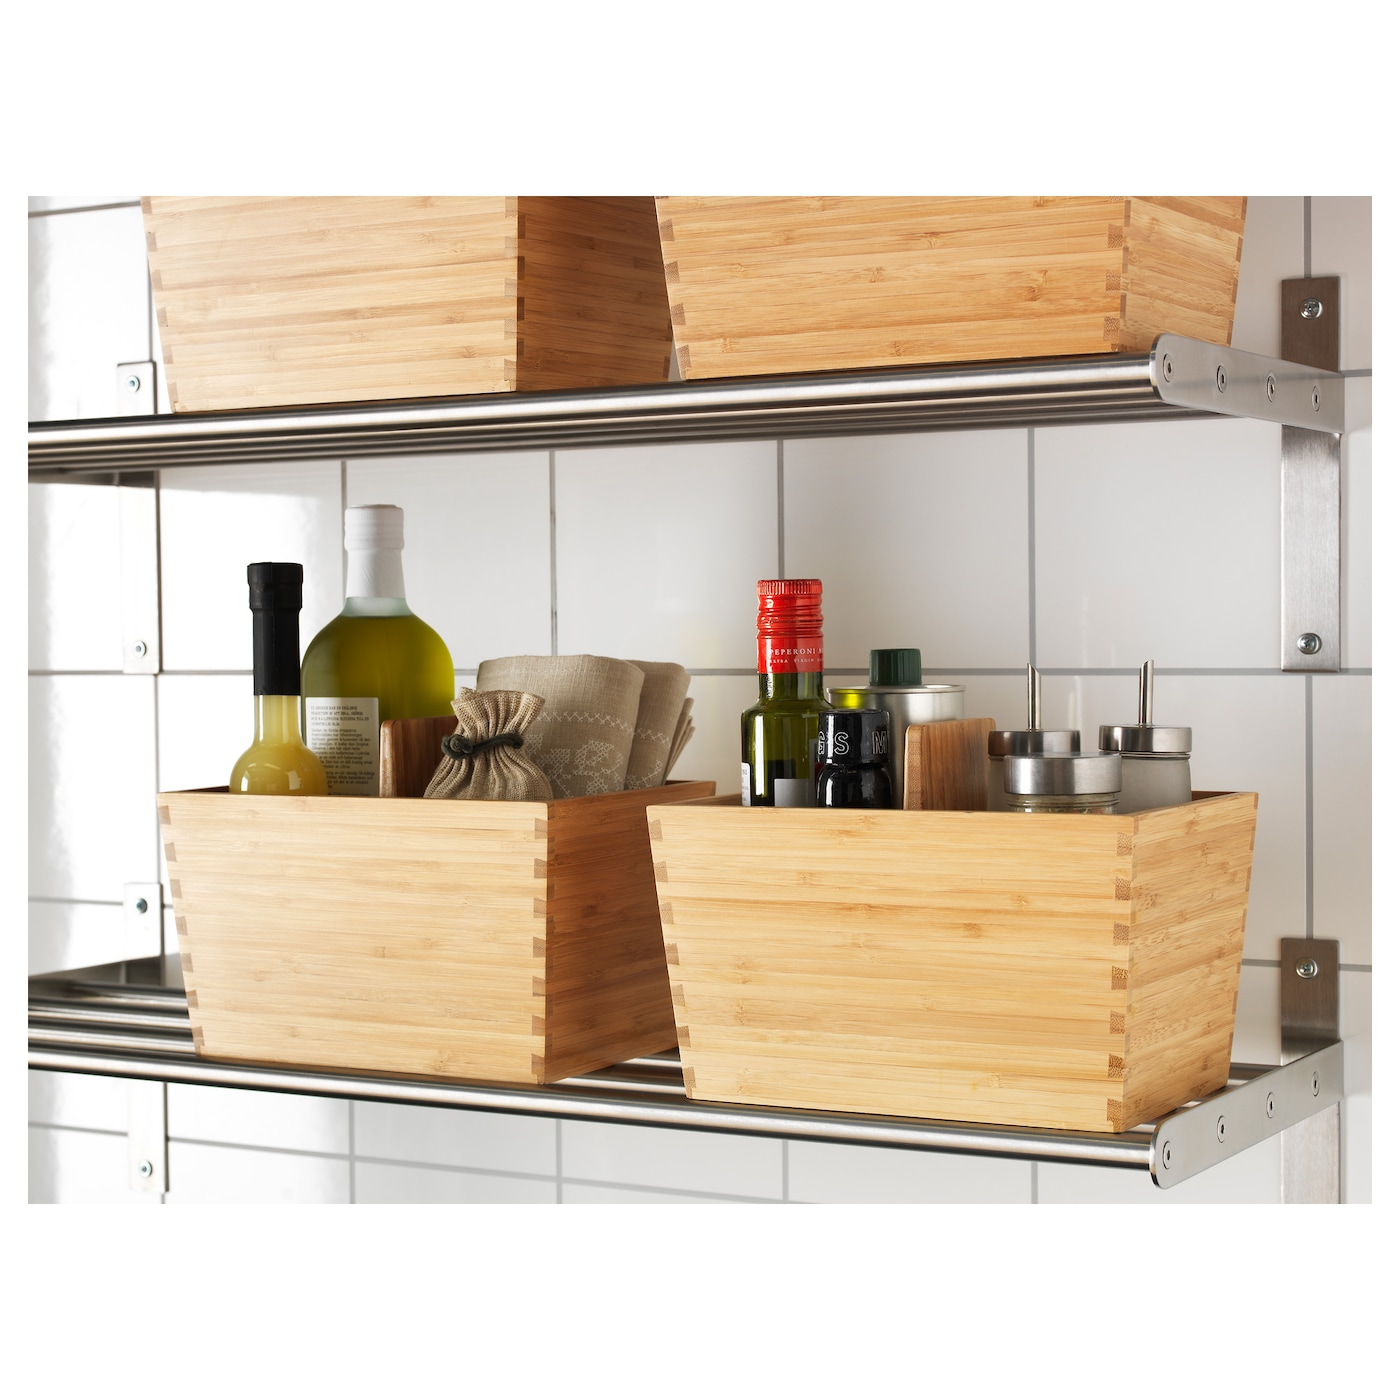 ikea kitchen storage boxes variera box with handle bamboo 24 x 17 cm ikea 4564